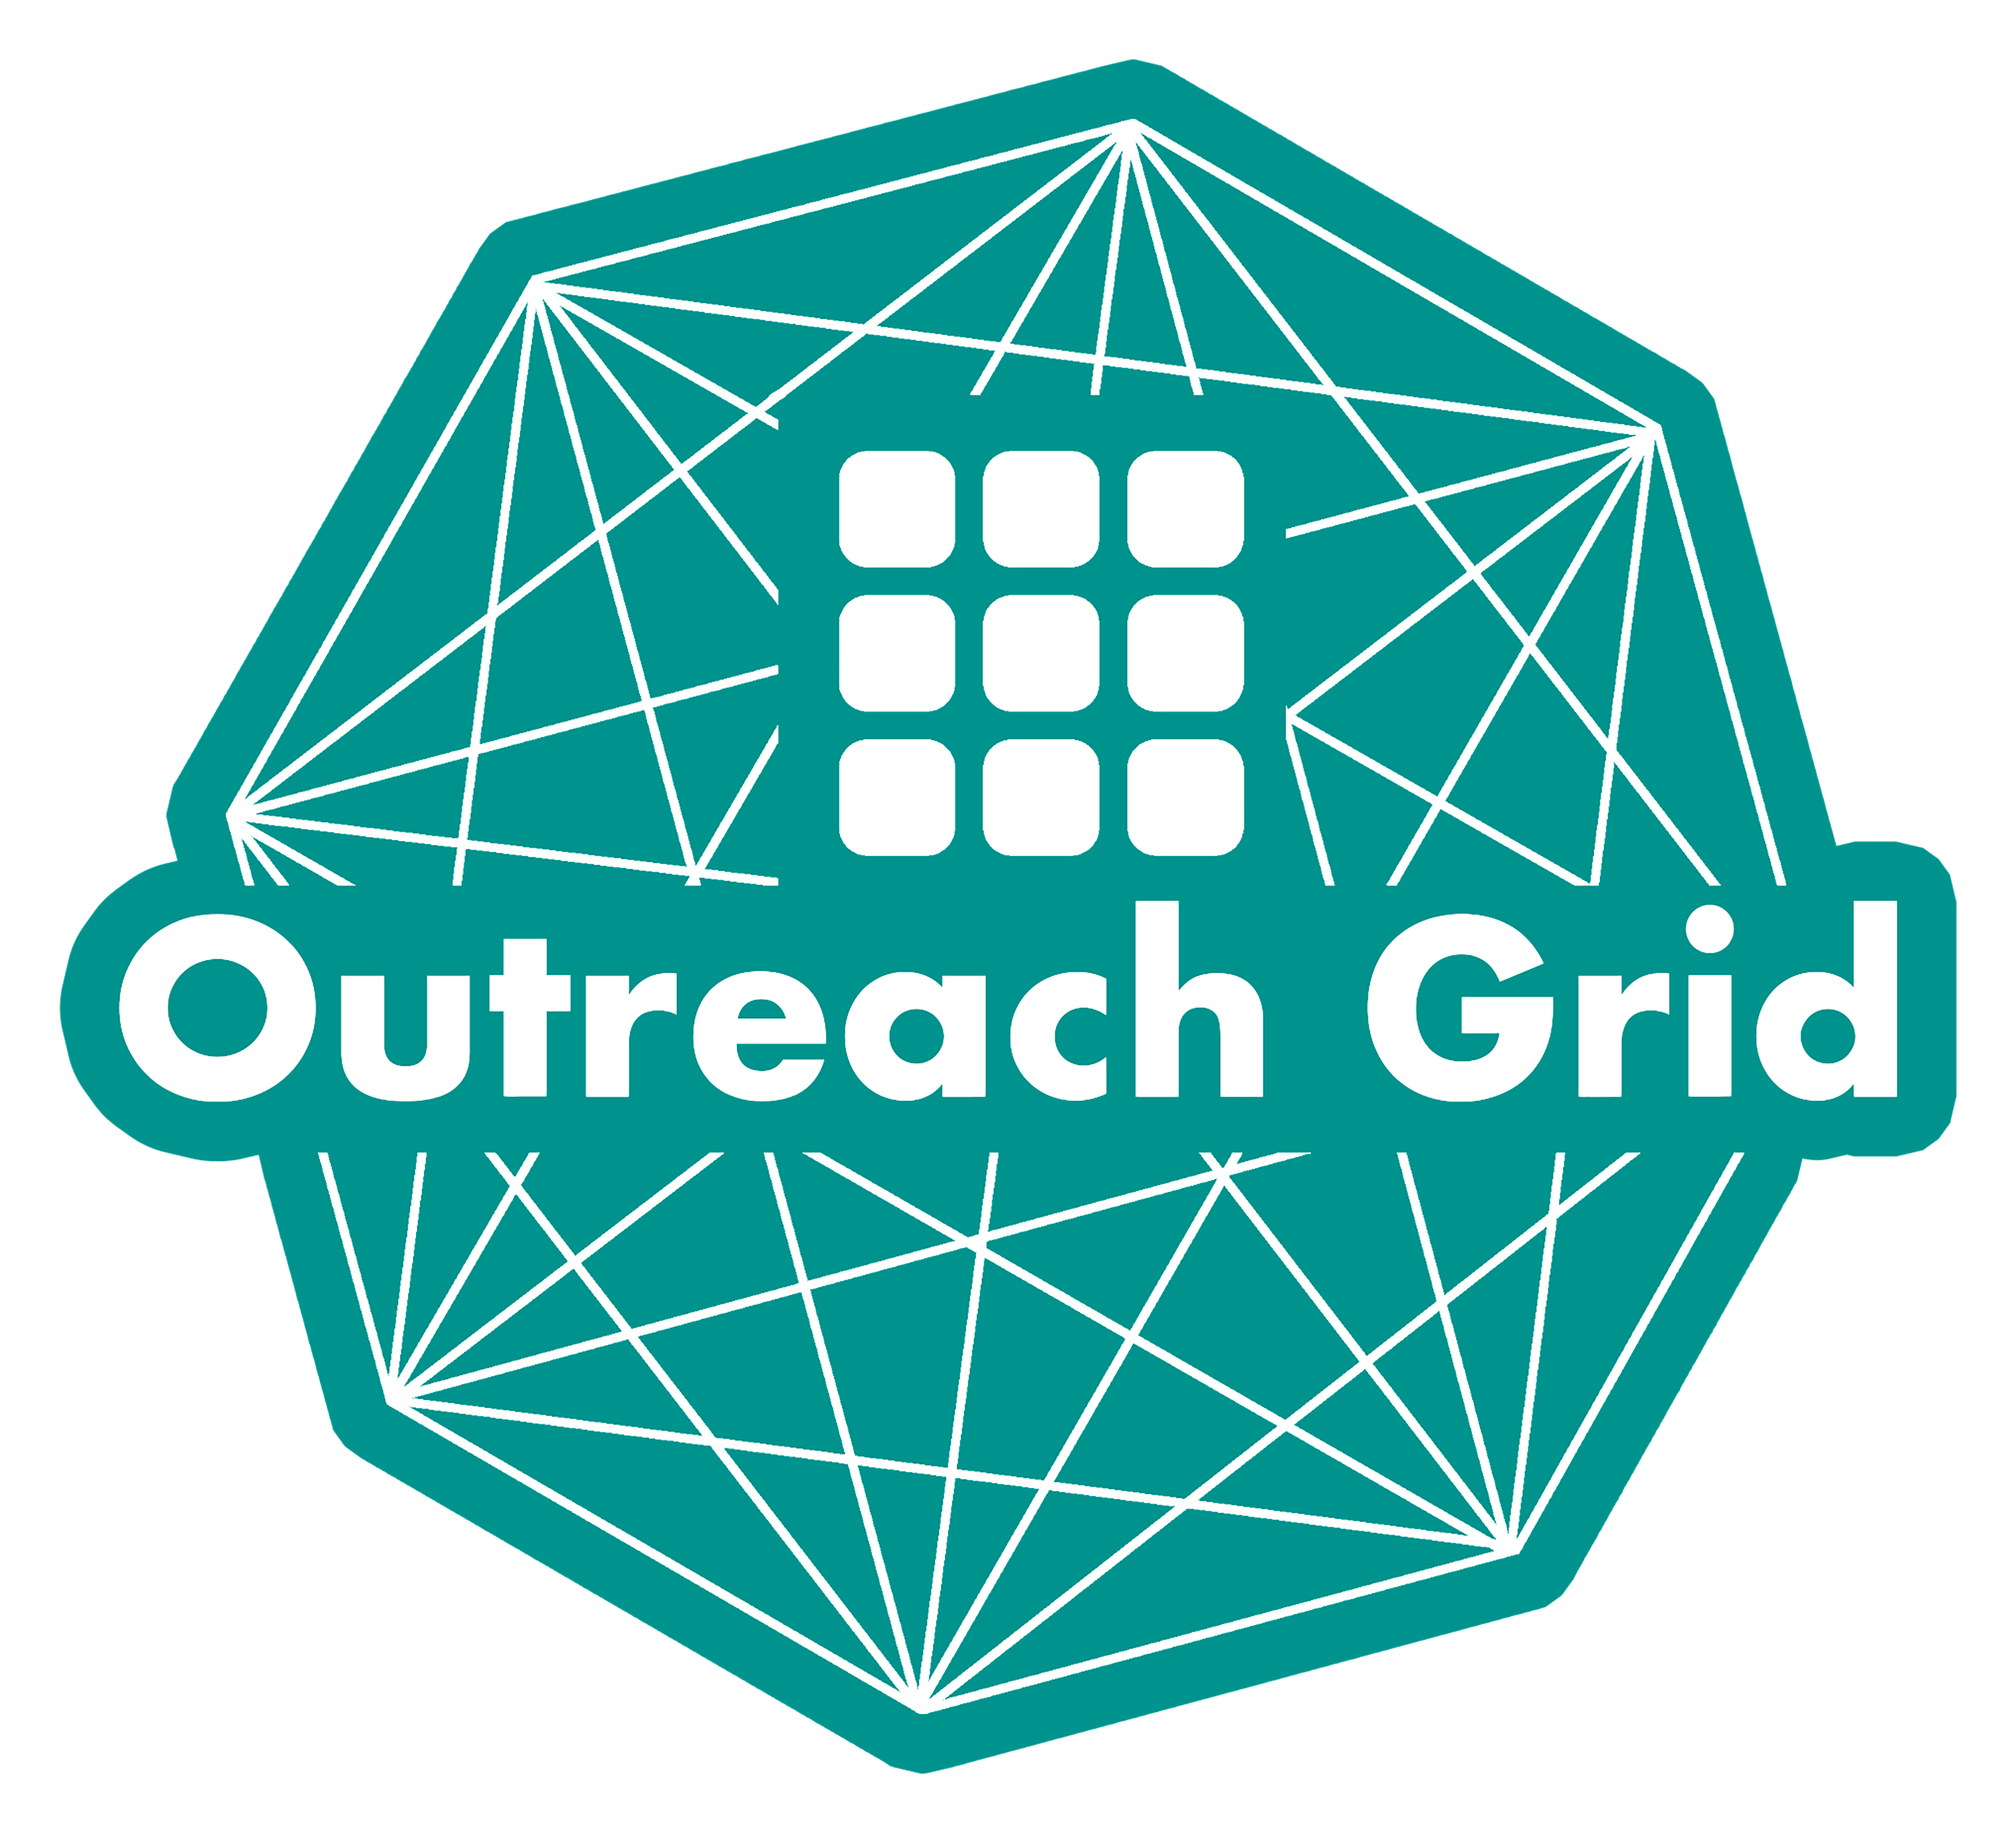 Outreach Grid: Product Updates